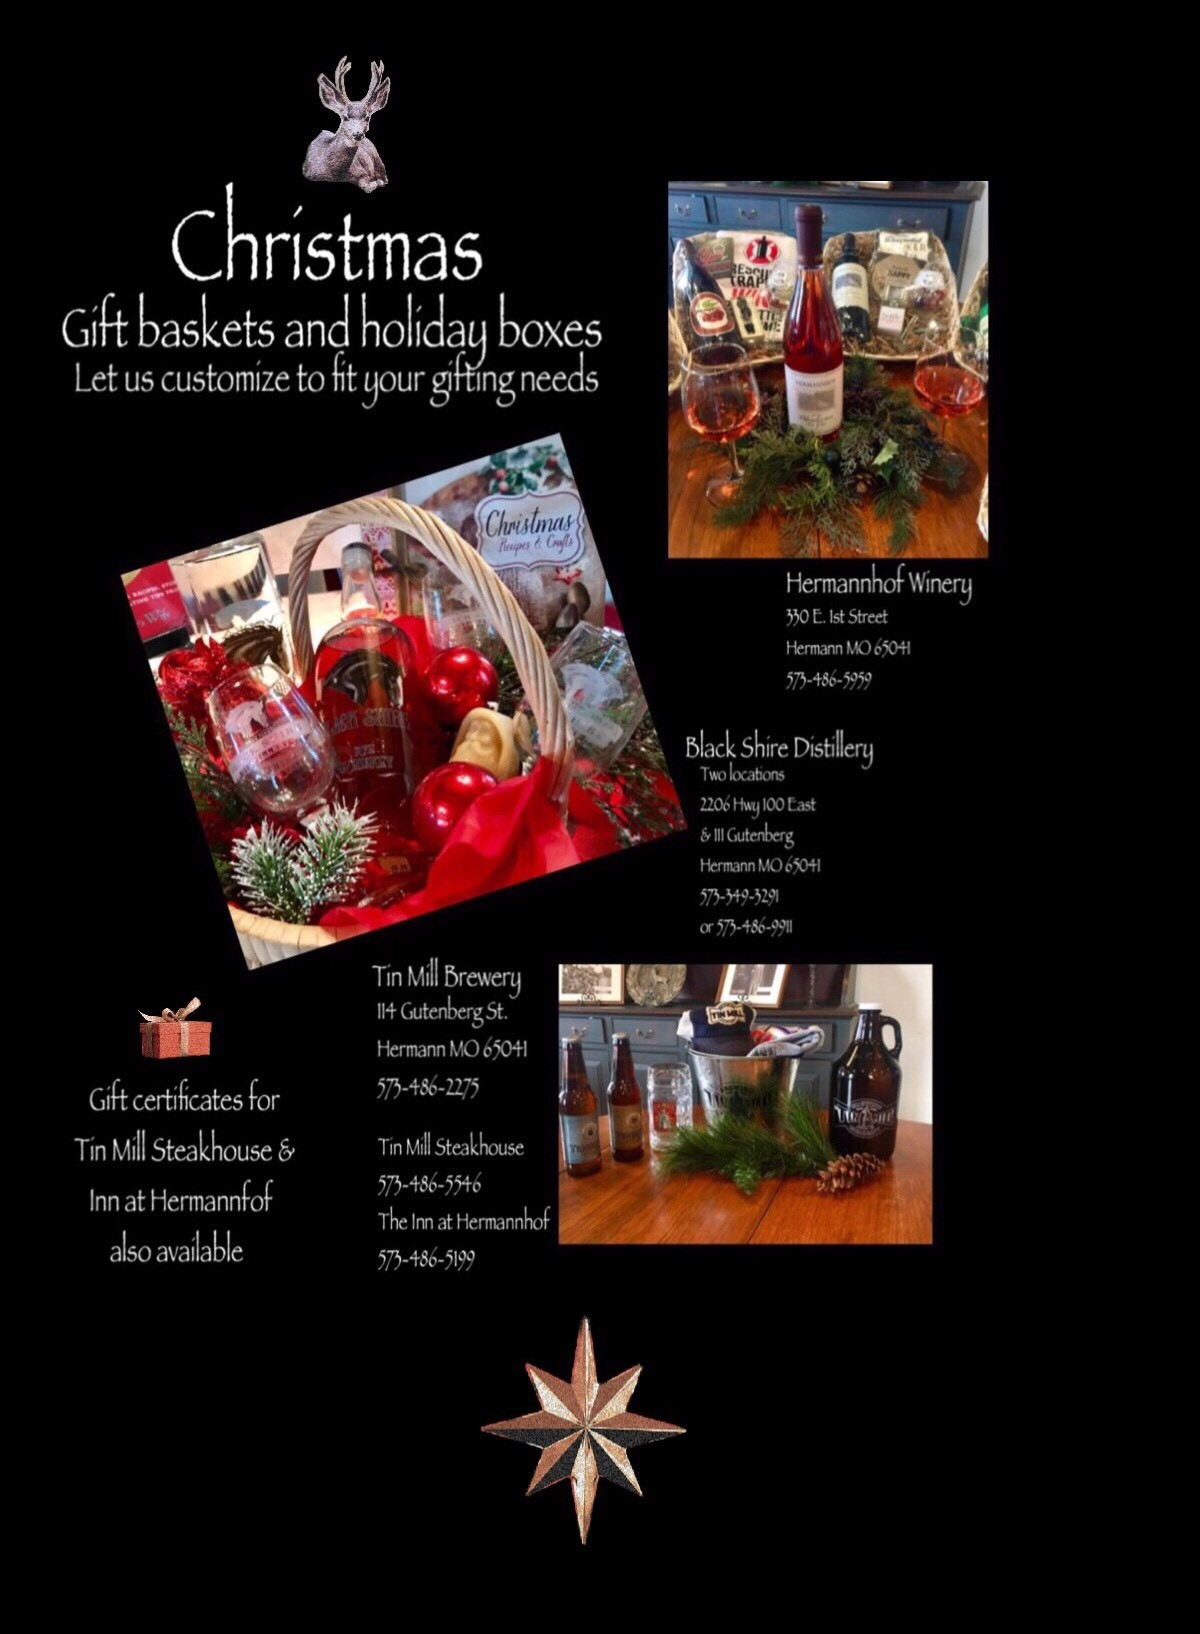 Christmas Gift baskets and holiday boxes. Let us customize to fit your gifting needs. Hermannhof Winery - 330 E. 1st Street Hermann MO 65041 573-486-5959 - Black Shire Distillery (Two Locations)- 2206 Hwy 100 East & 111 Gutenberg Hermann, MO 65041 - 573-349-3291 or 573-486-9911 - Gift certificates for Tin Mill Steakhouse & Inn at Hermannhof also available. Tin Mill Brewery - 114 Gutenberg St. Hermann MO 65041 573-486-2275 Tin Mill Steakhouse 573-486-5546 - The Inn at Hermannhof 573-486-5199